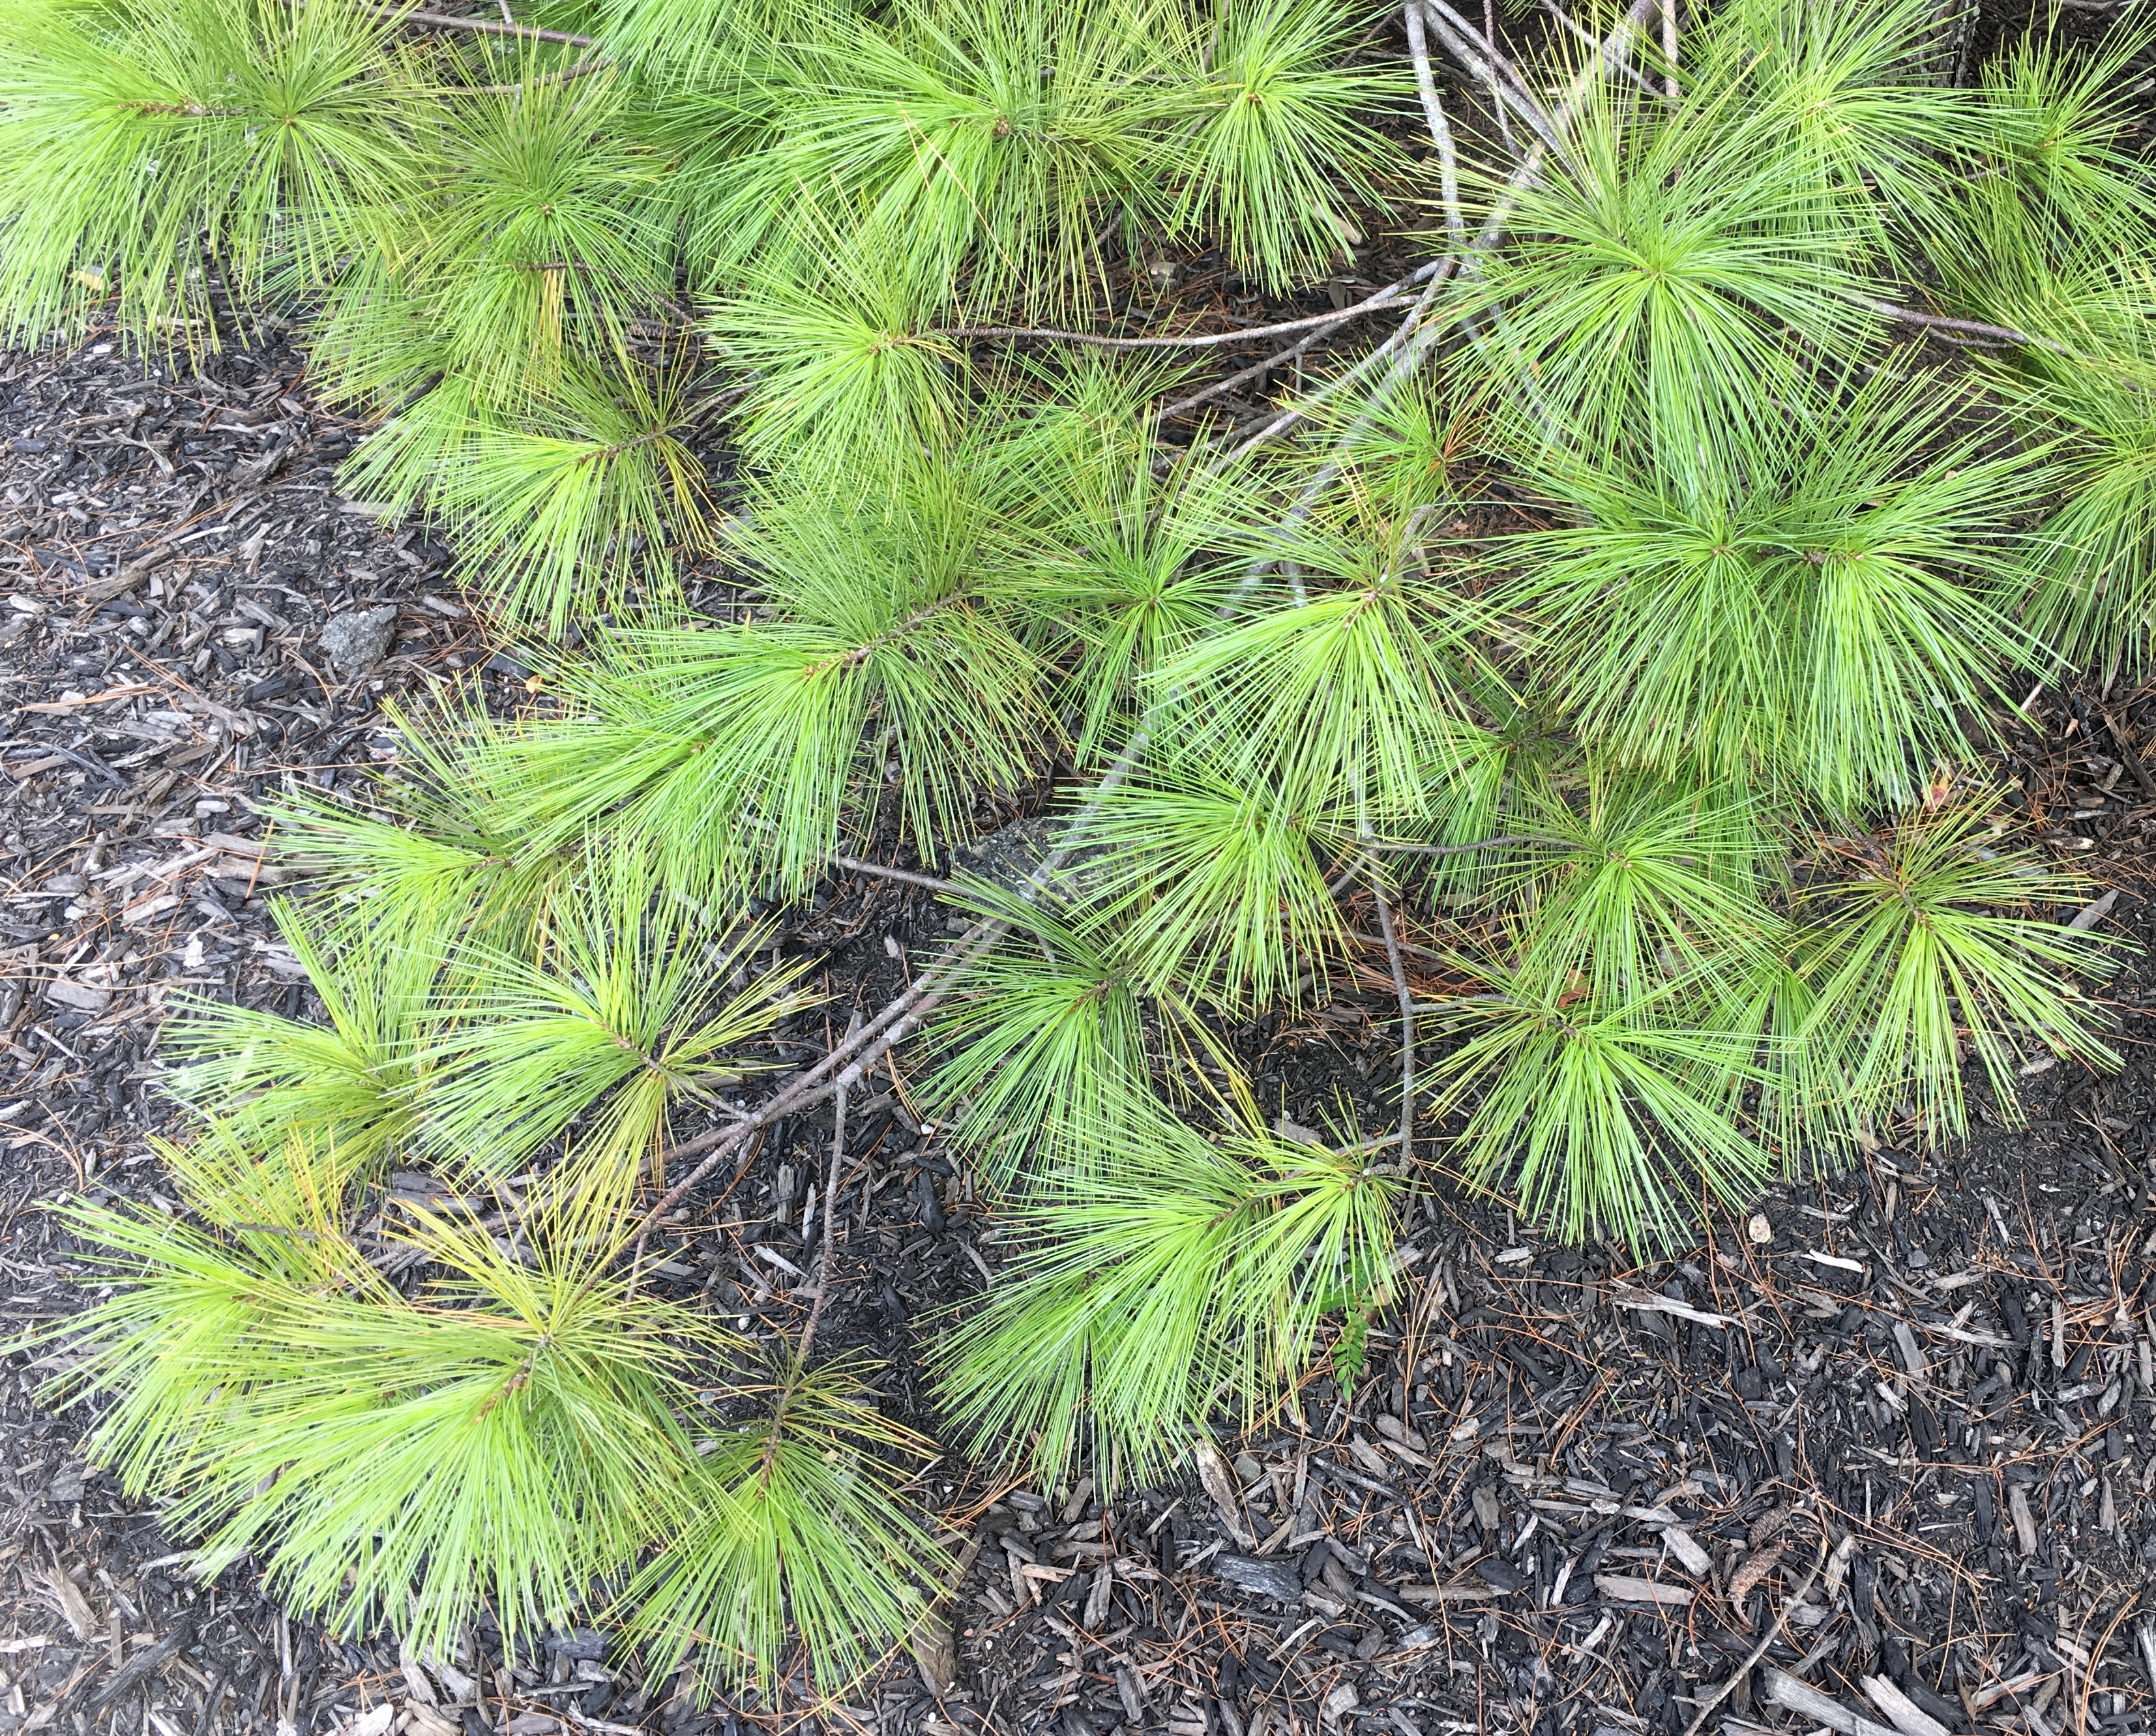 white pine needles